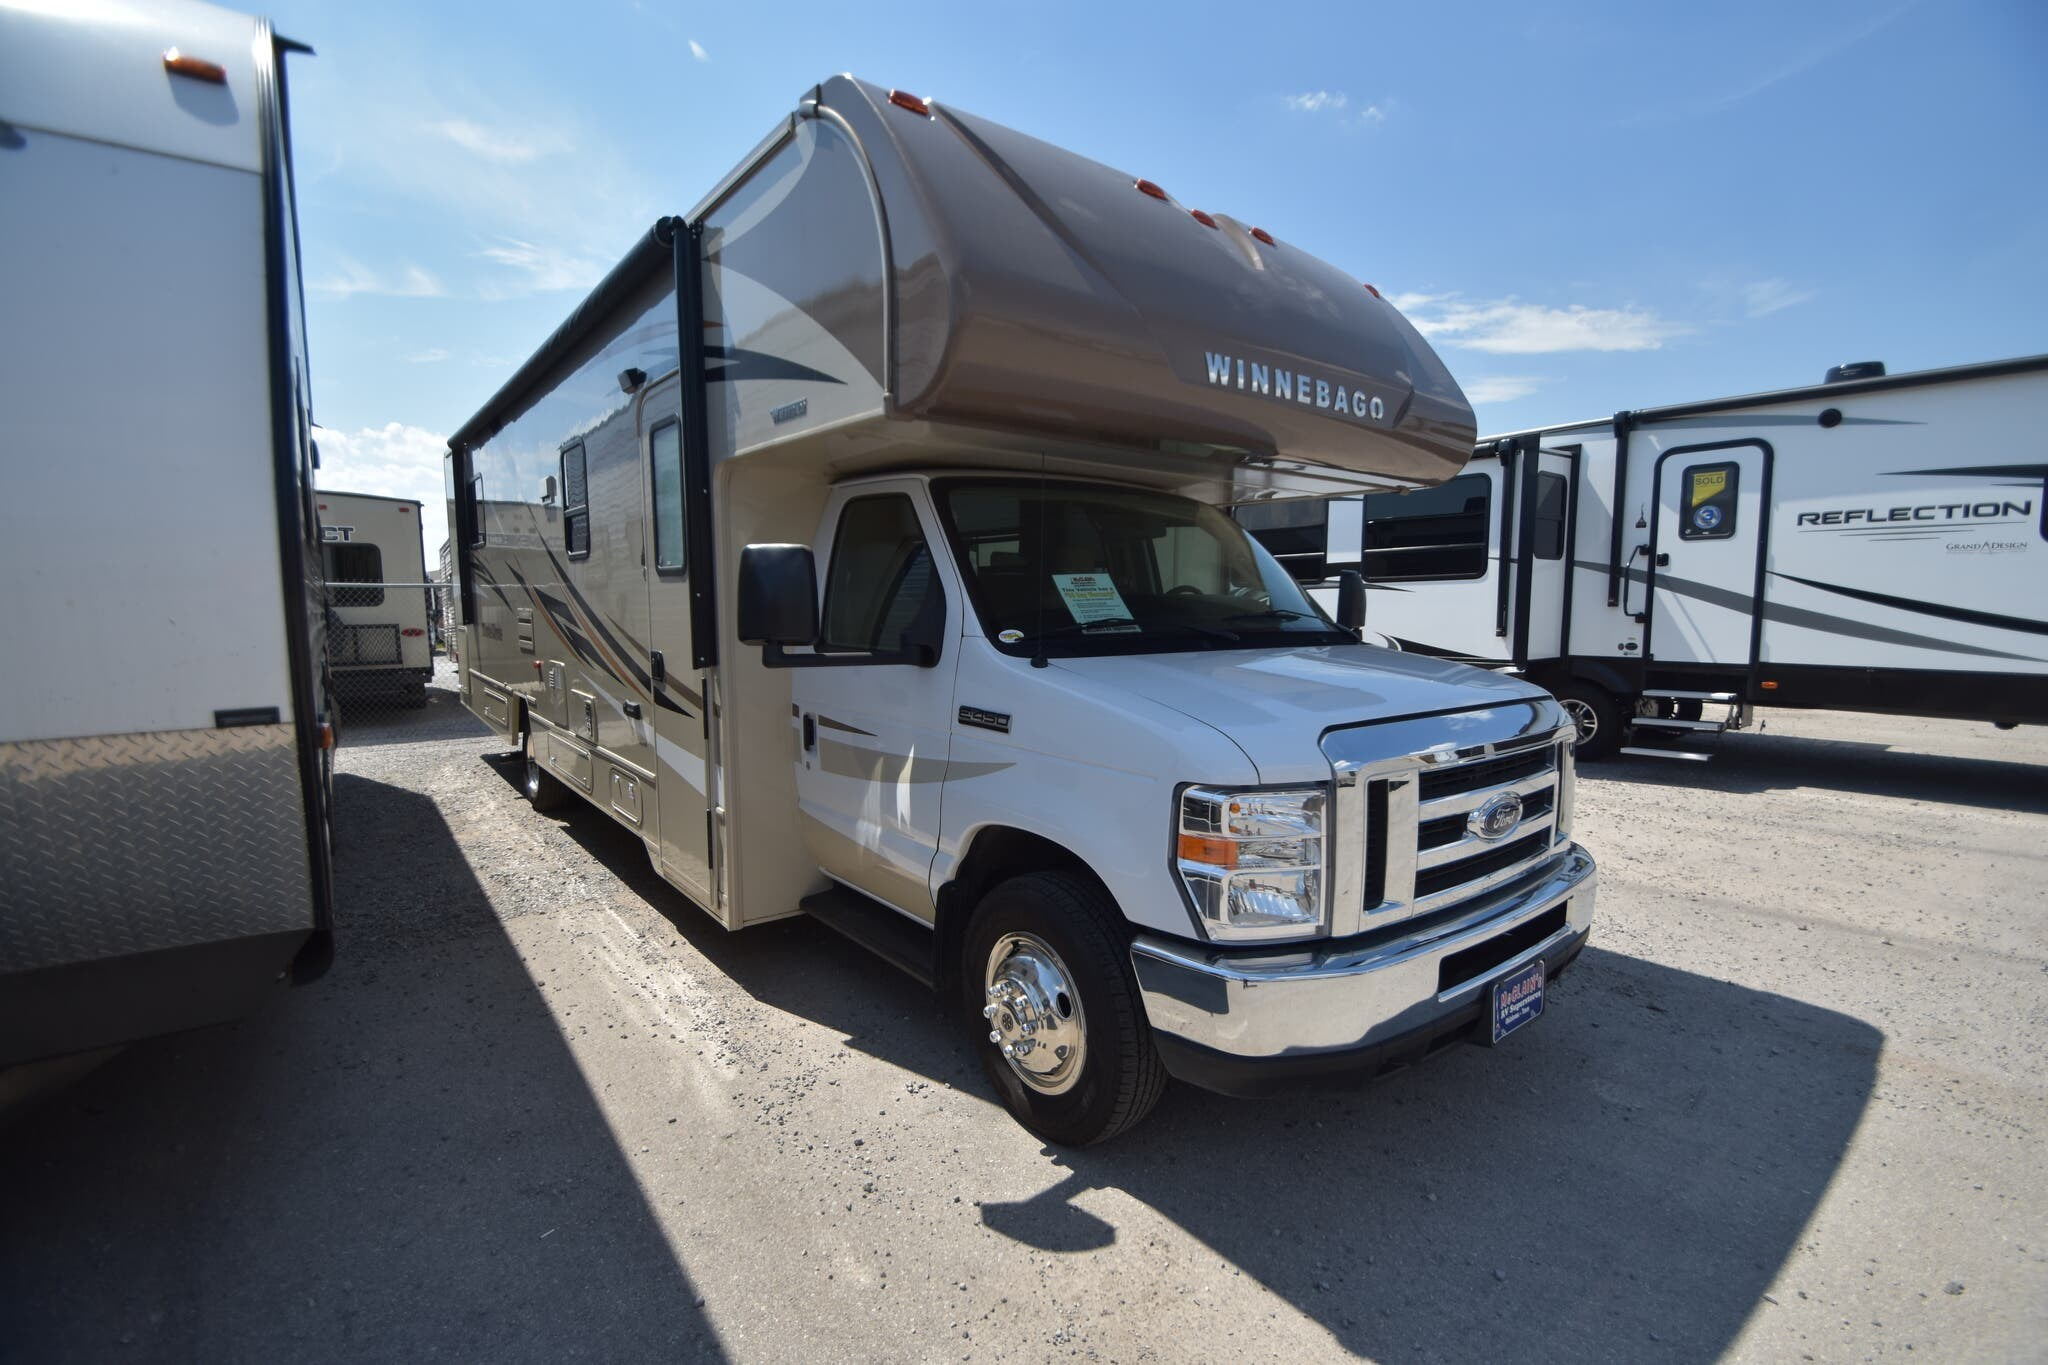 Used Class C RV For Sale In TX and OK   McClain's RV Super Store